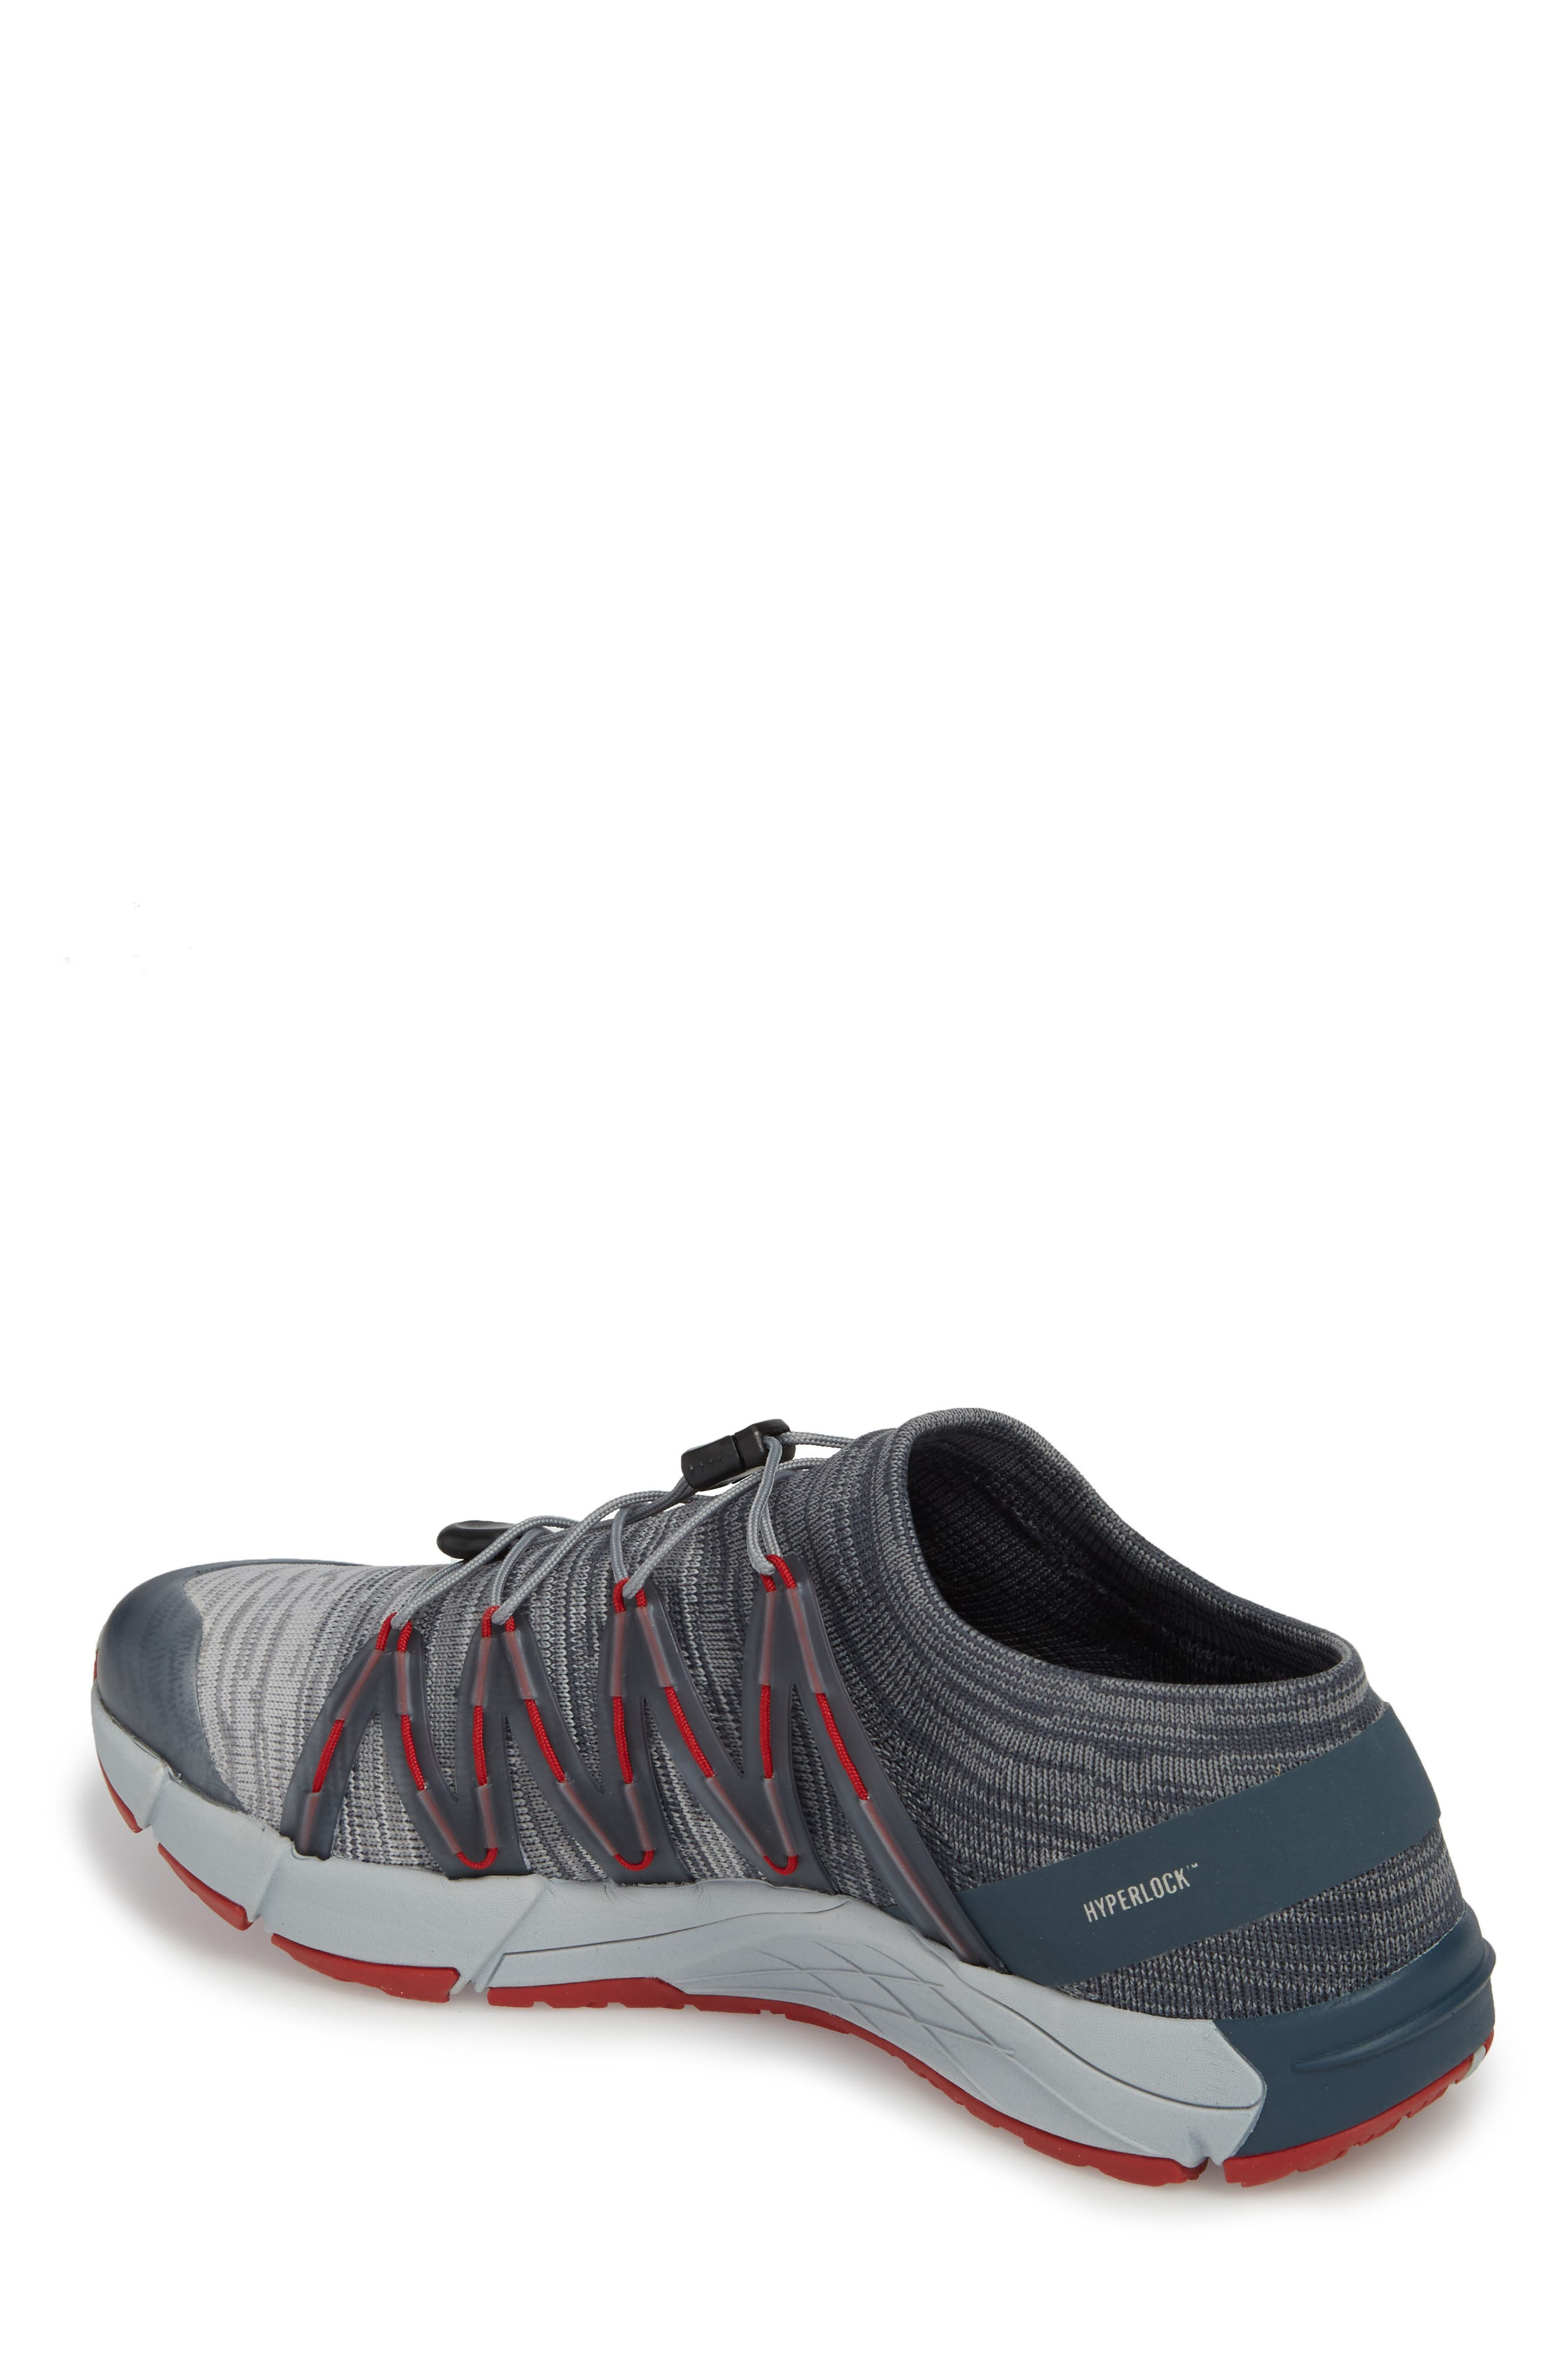 Bare Access Flex Knit Running Shoe,                             Alternate thumbnail 2, color,                             Vapor